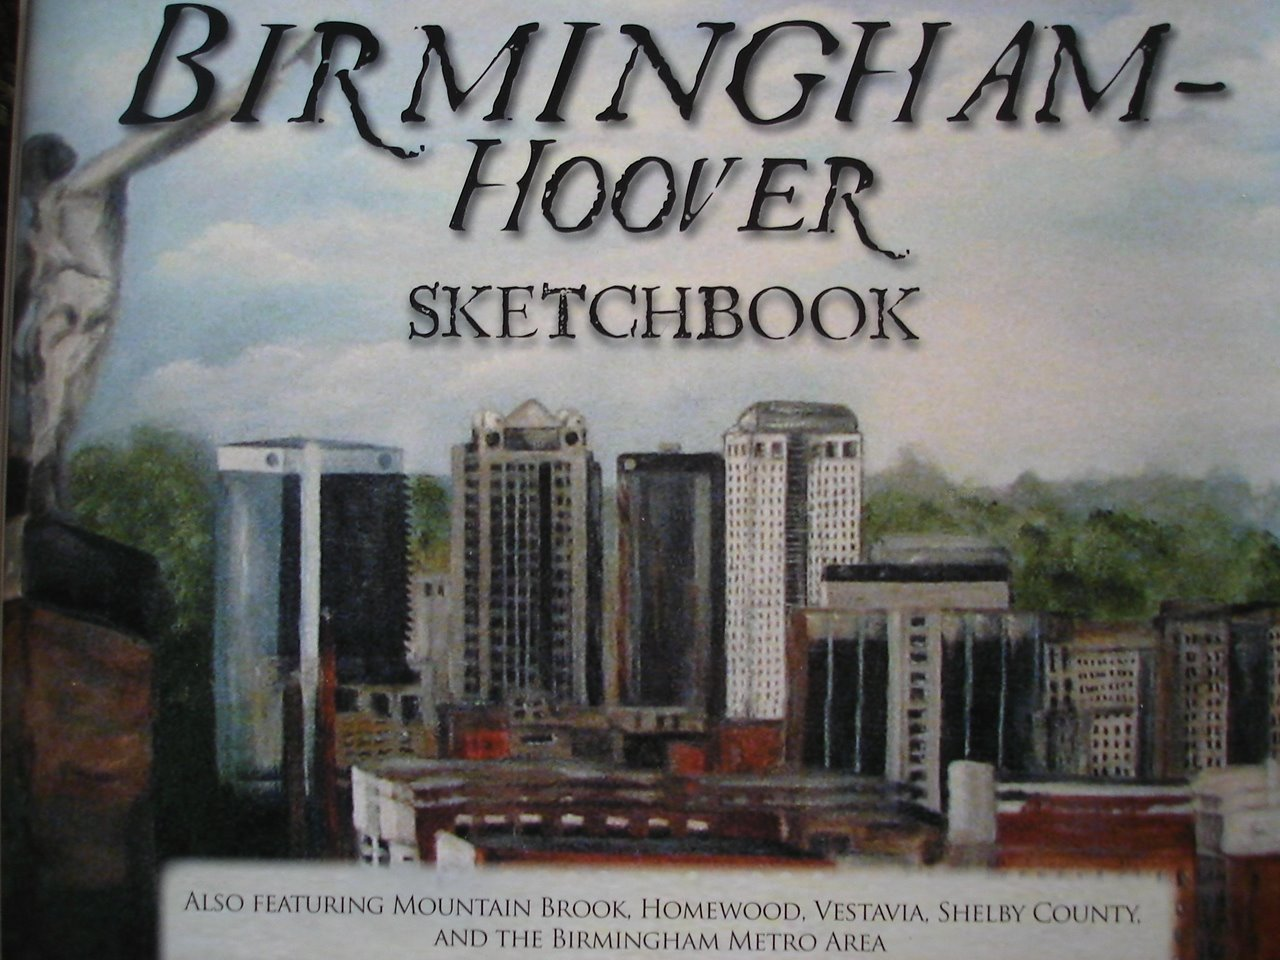 BIRMINGHAM SKETCHBOOK